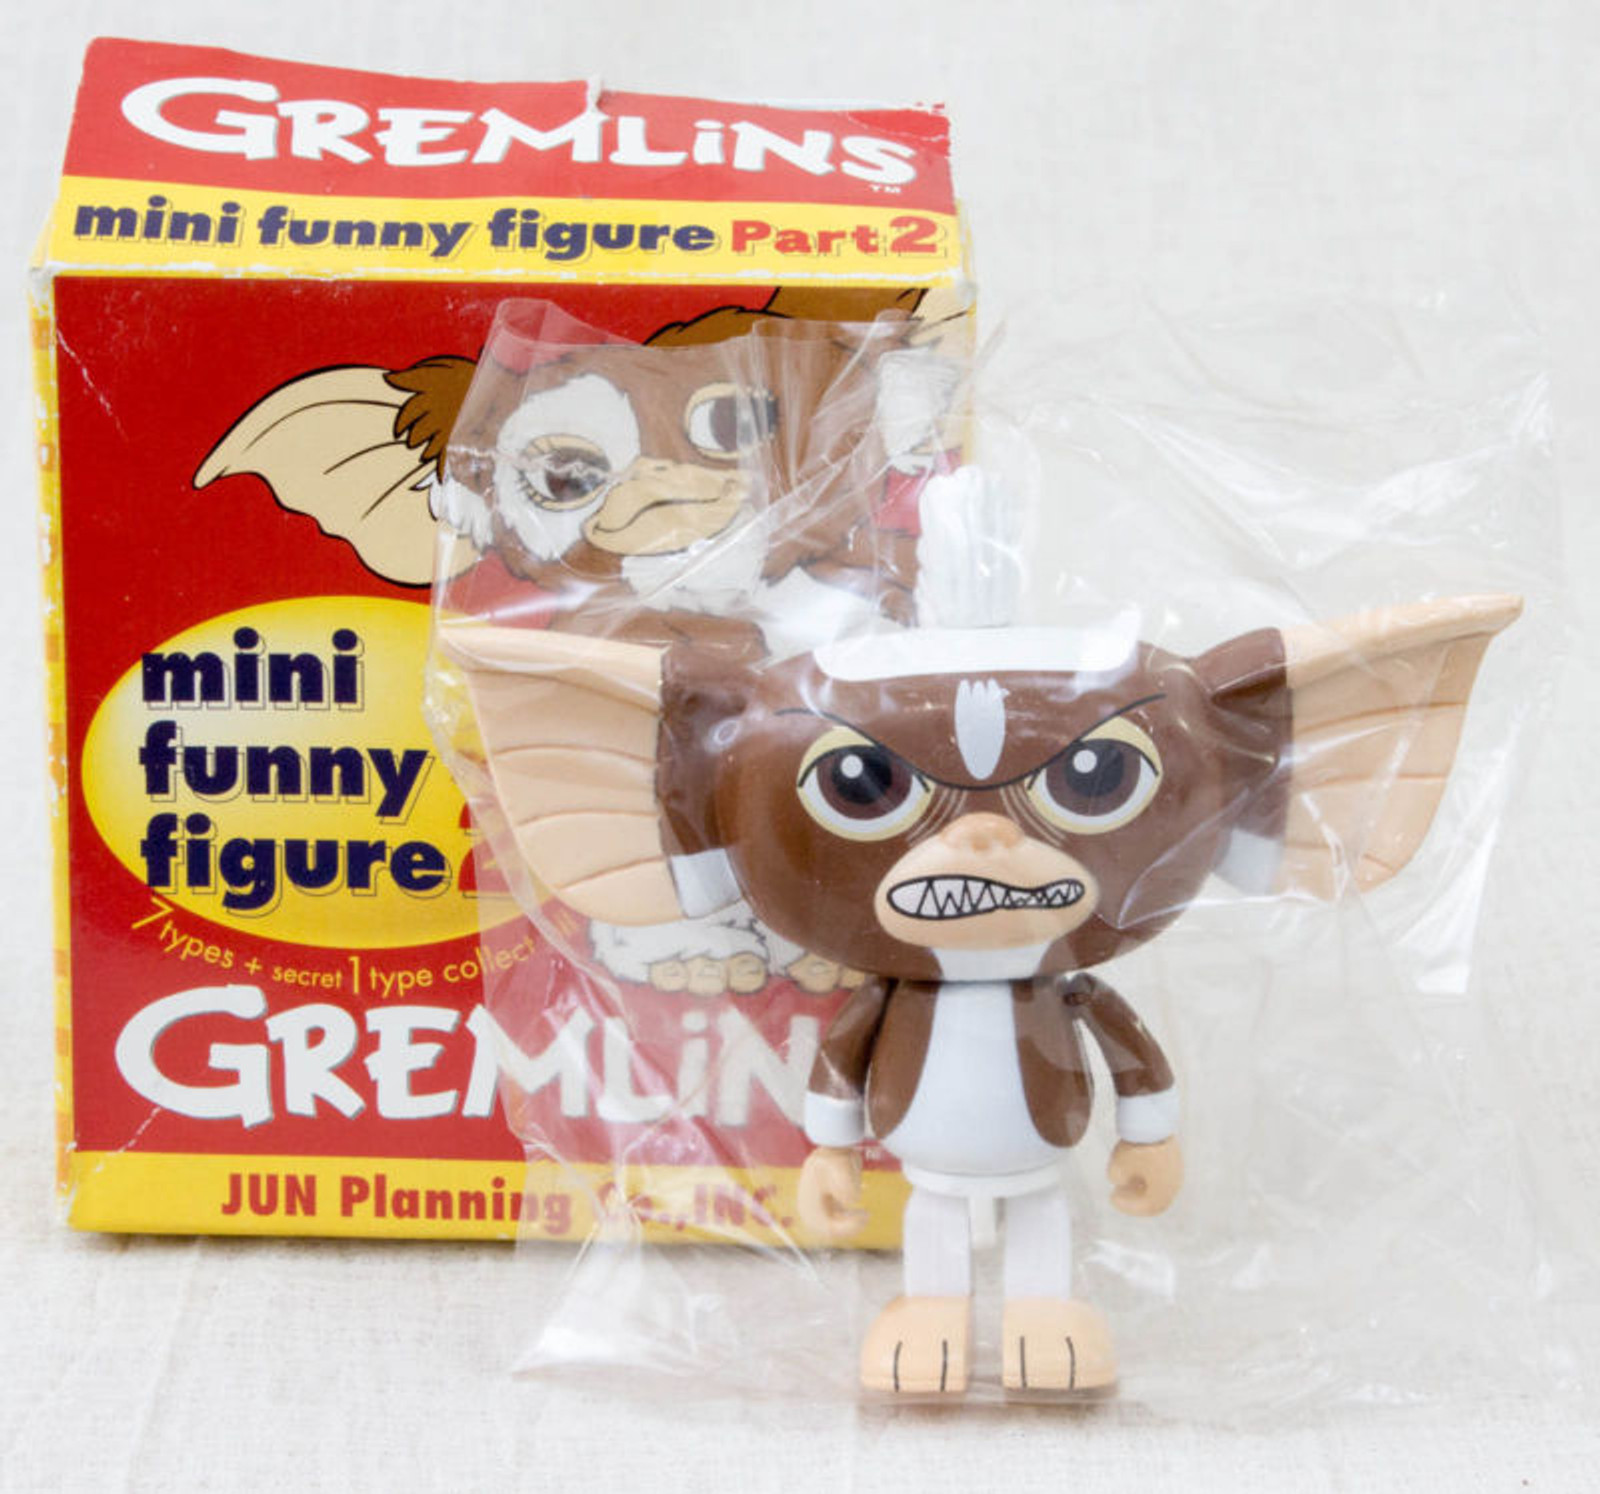 Gremlins 2 Jun Planning Mini Funny Figure Part.2 Stripe Ver. JAPAN